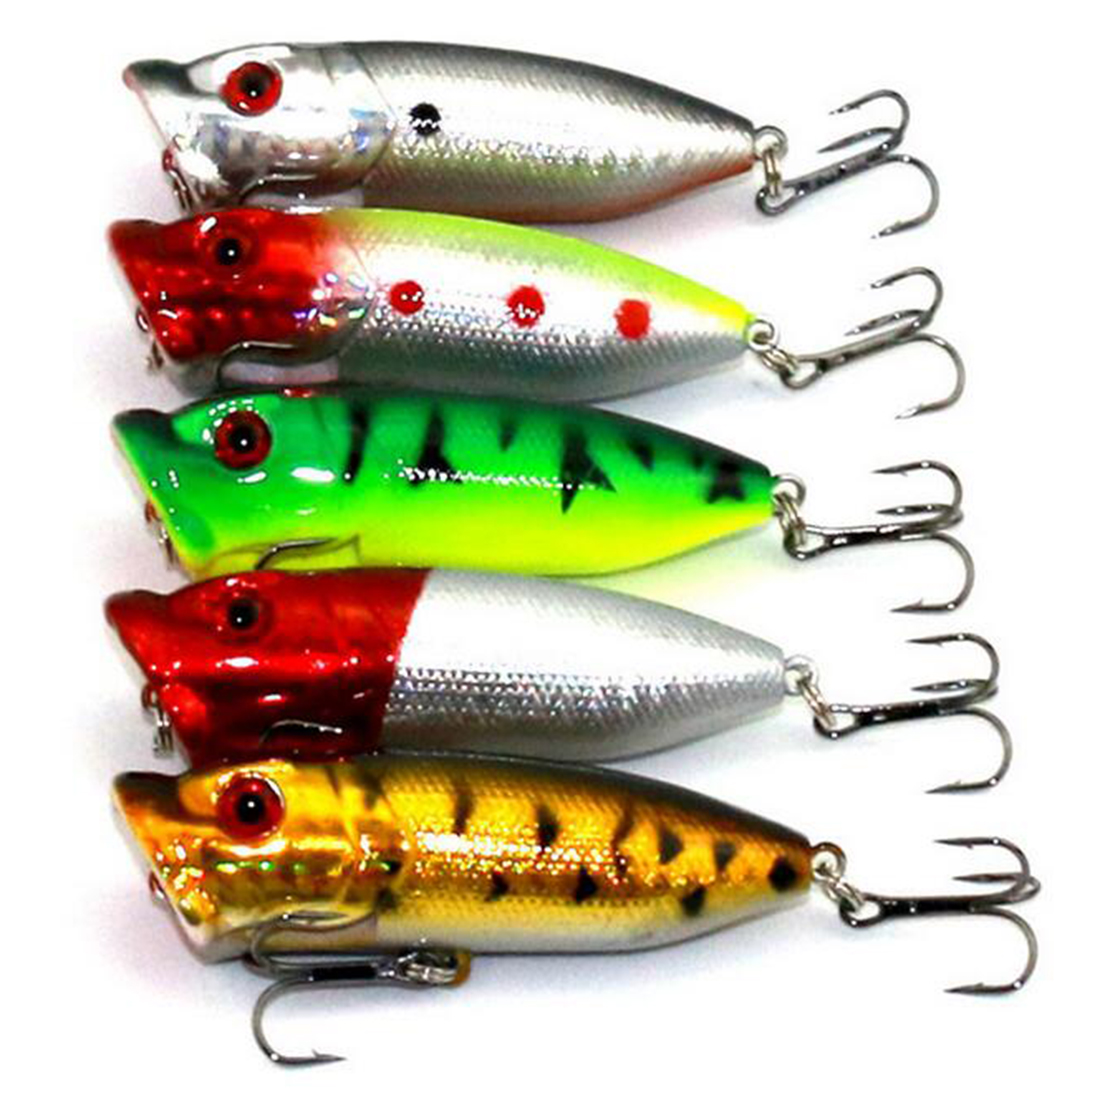 Artificial Fish Lures Artificial Bionic Bait Popper Random Color Fish Tackle